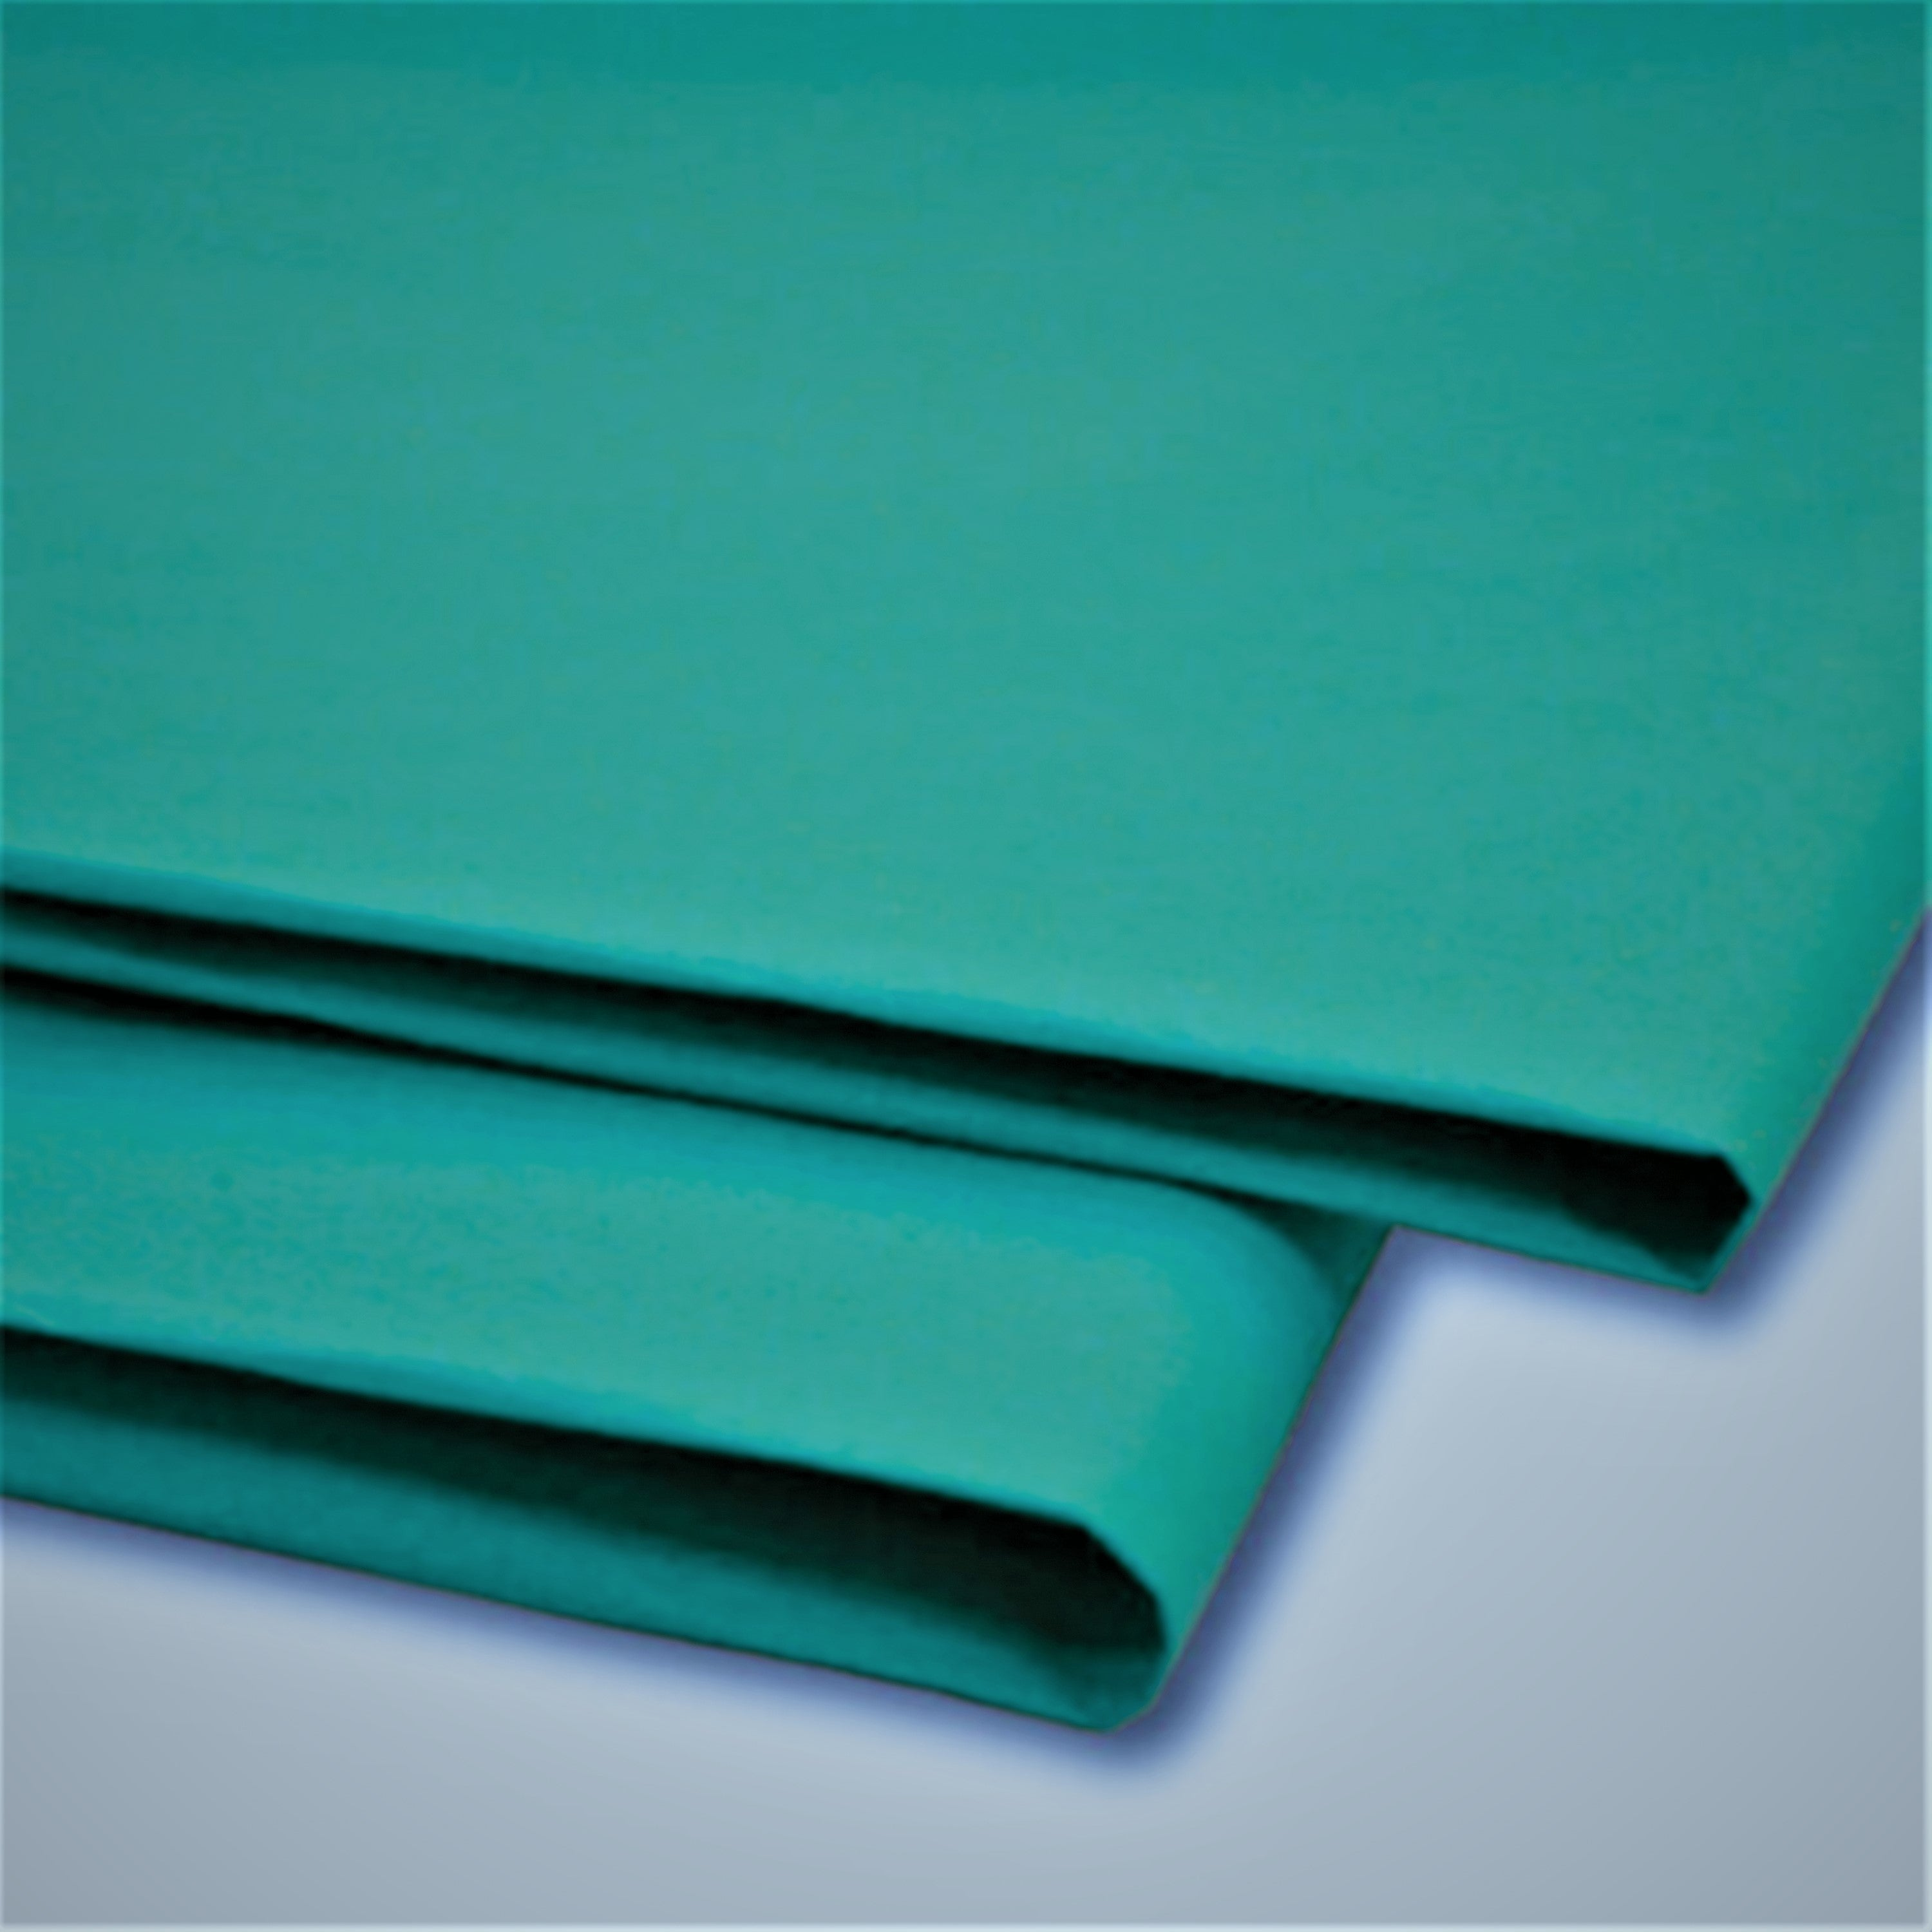 50 SHEETS OF LIME GREEN ACID FREE TISSUE PAPER 500mm x 750mm 18gsm *QUALITY*